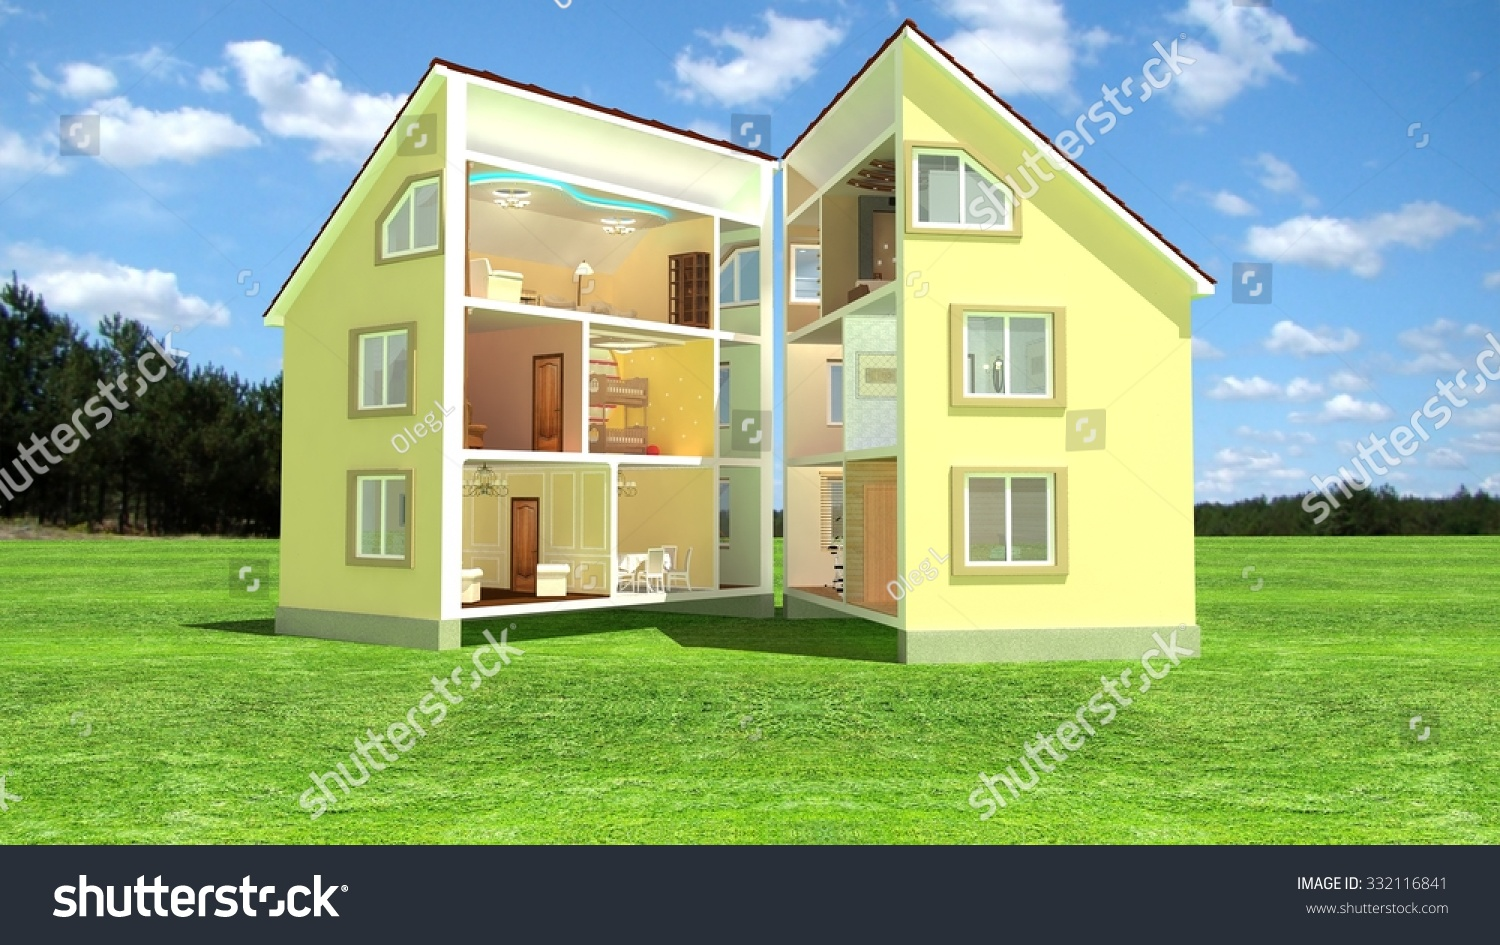 3d isometric view of the cut residential house on the yard